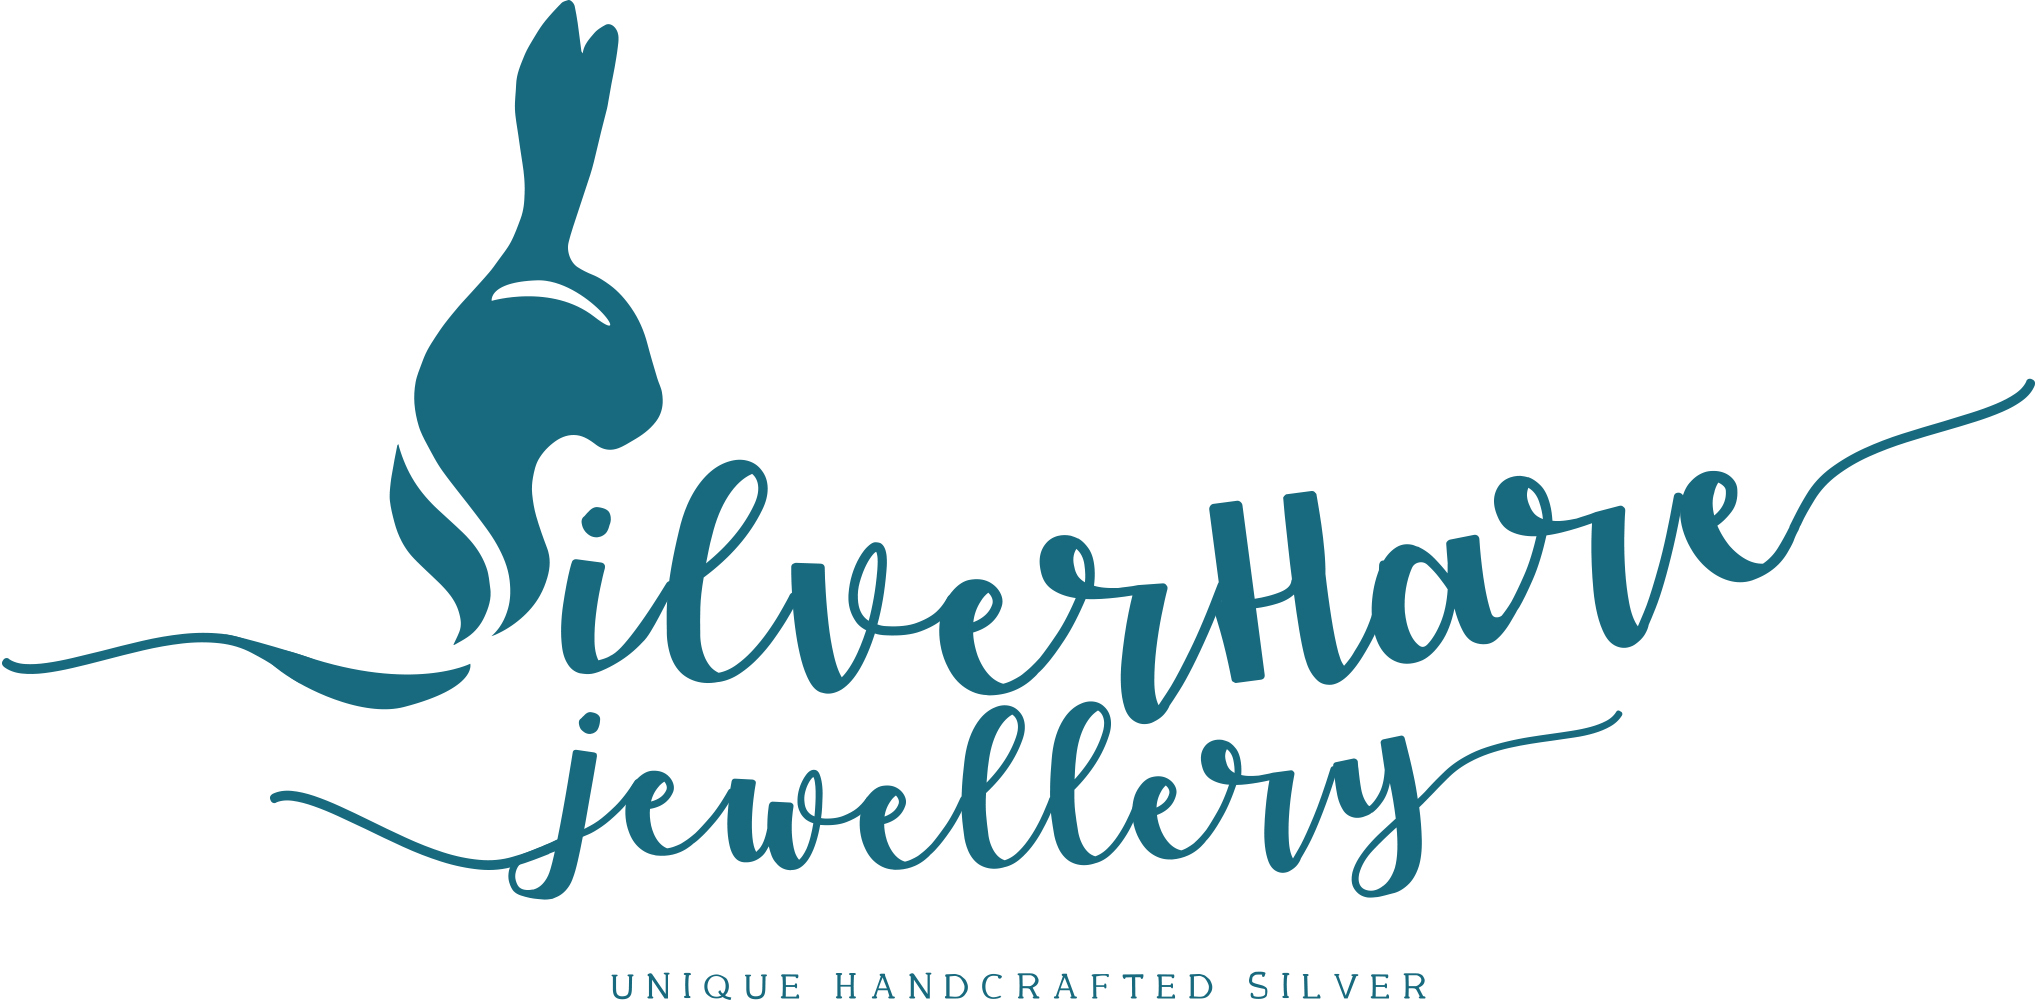 Silver Hare Jewellery